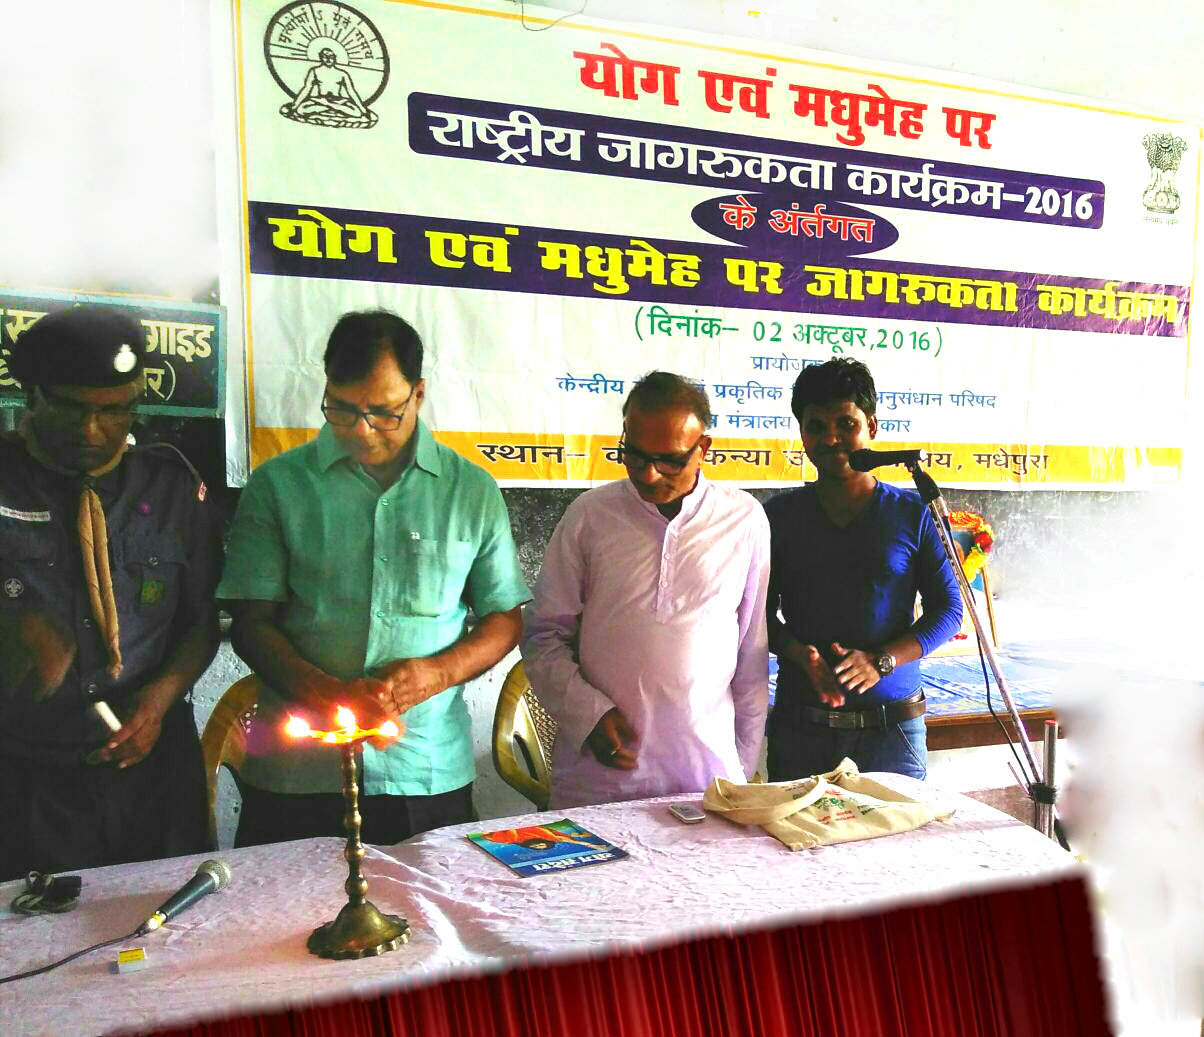 Samajsevi Dr.Bhupendra Madhepuri inaugurating a Patanjali Arranged Programme on Yoga & Diabetes on the occasion of Gandhi Jayanti at Madhepura.